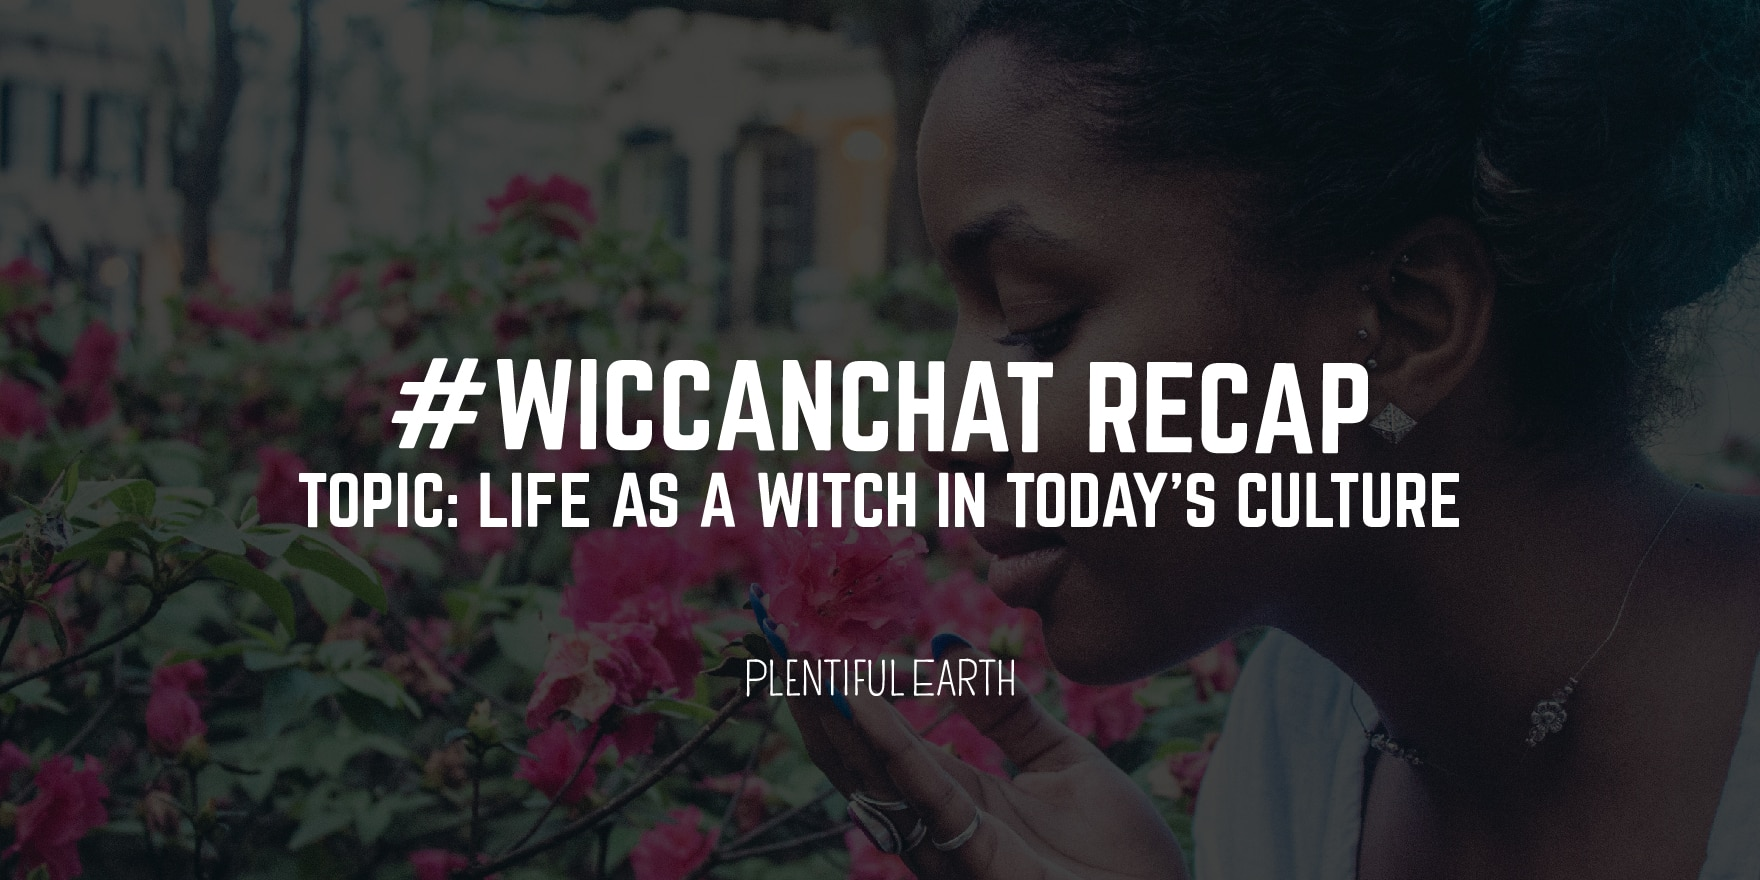 Life as a Witch in today's culture